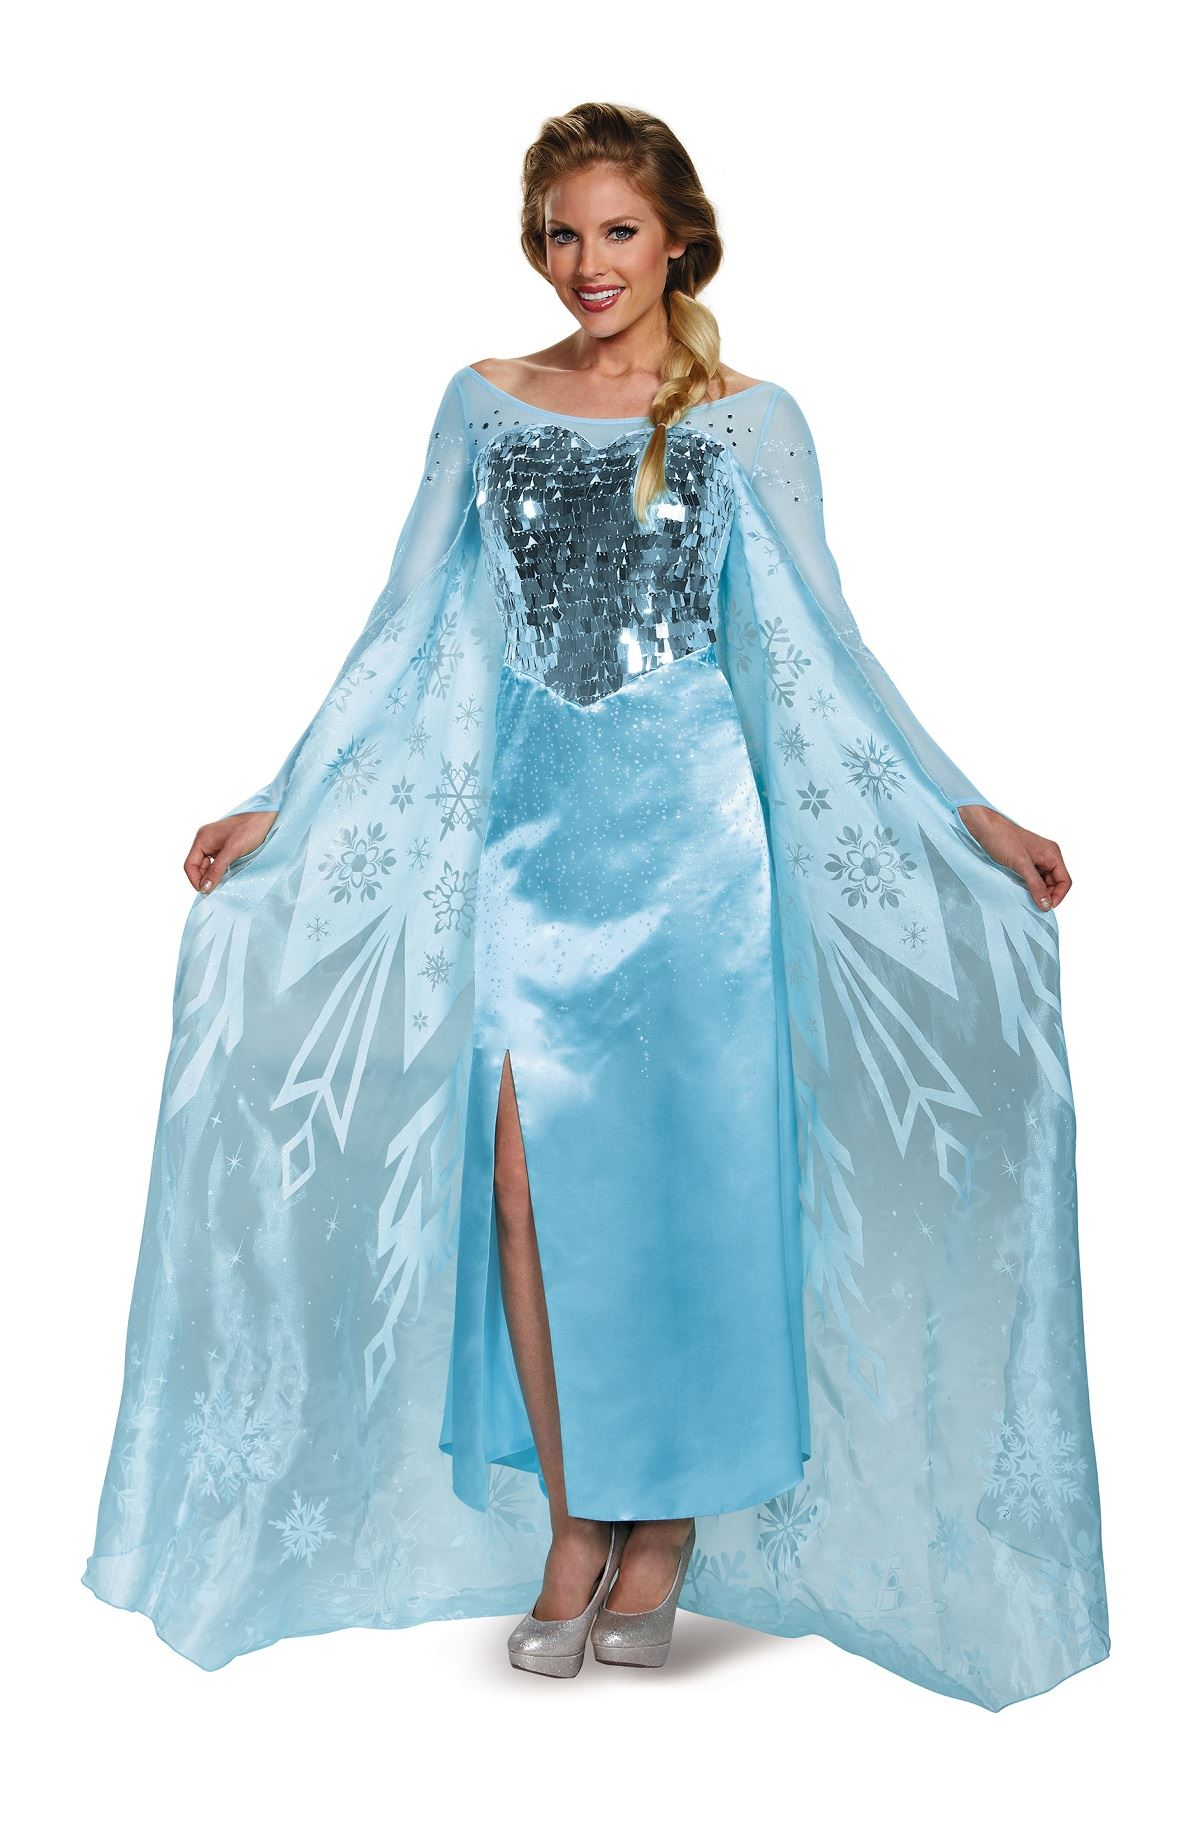 An Elsa Halloween costume How to Dress Like Elsa From 'Frozen' in 6 Easy Steps, Because It Looks Like You're The Queen Of Halloween. By Julia Friedman. Oct 3 Disney.